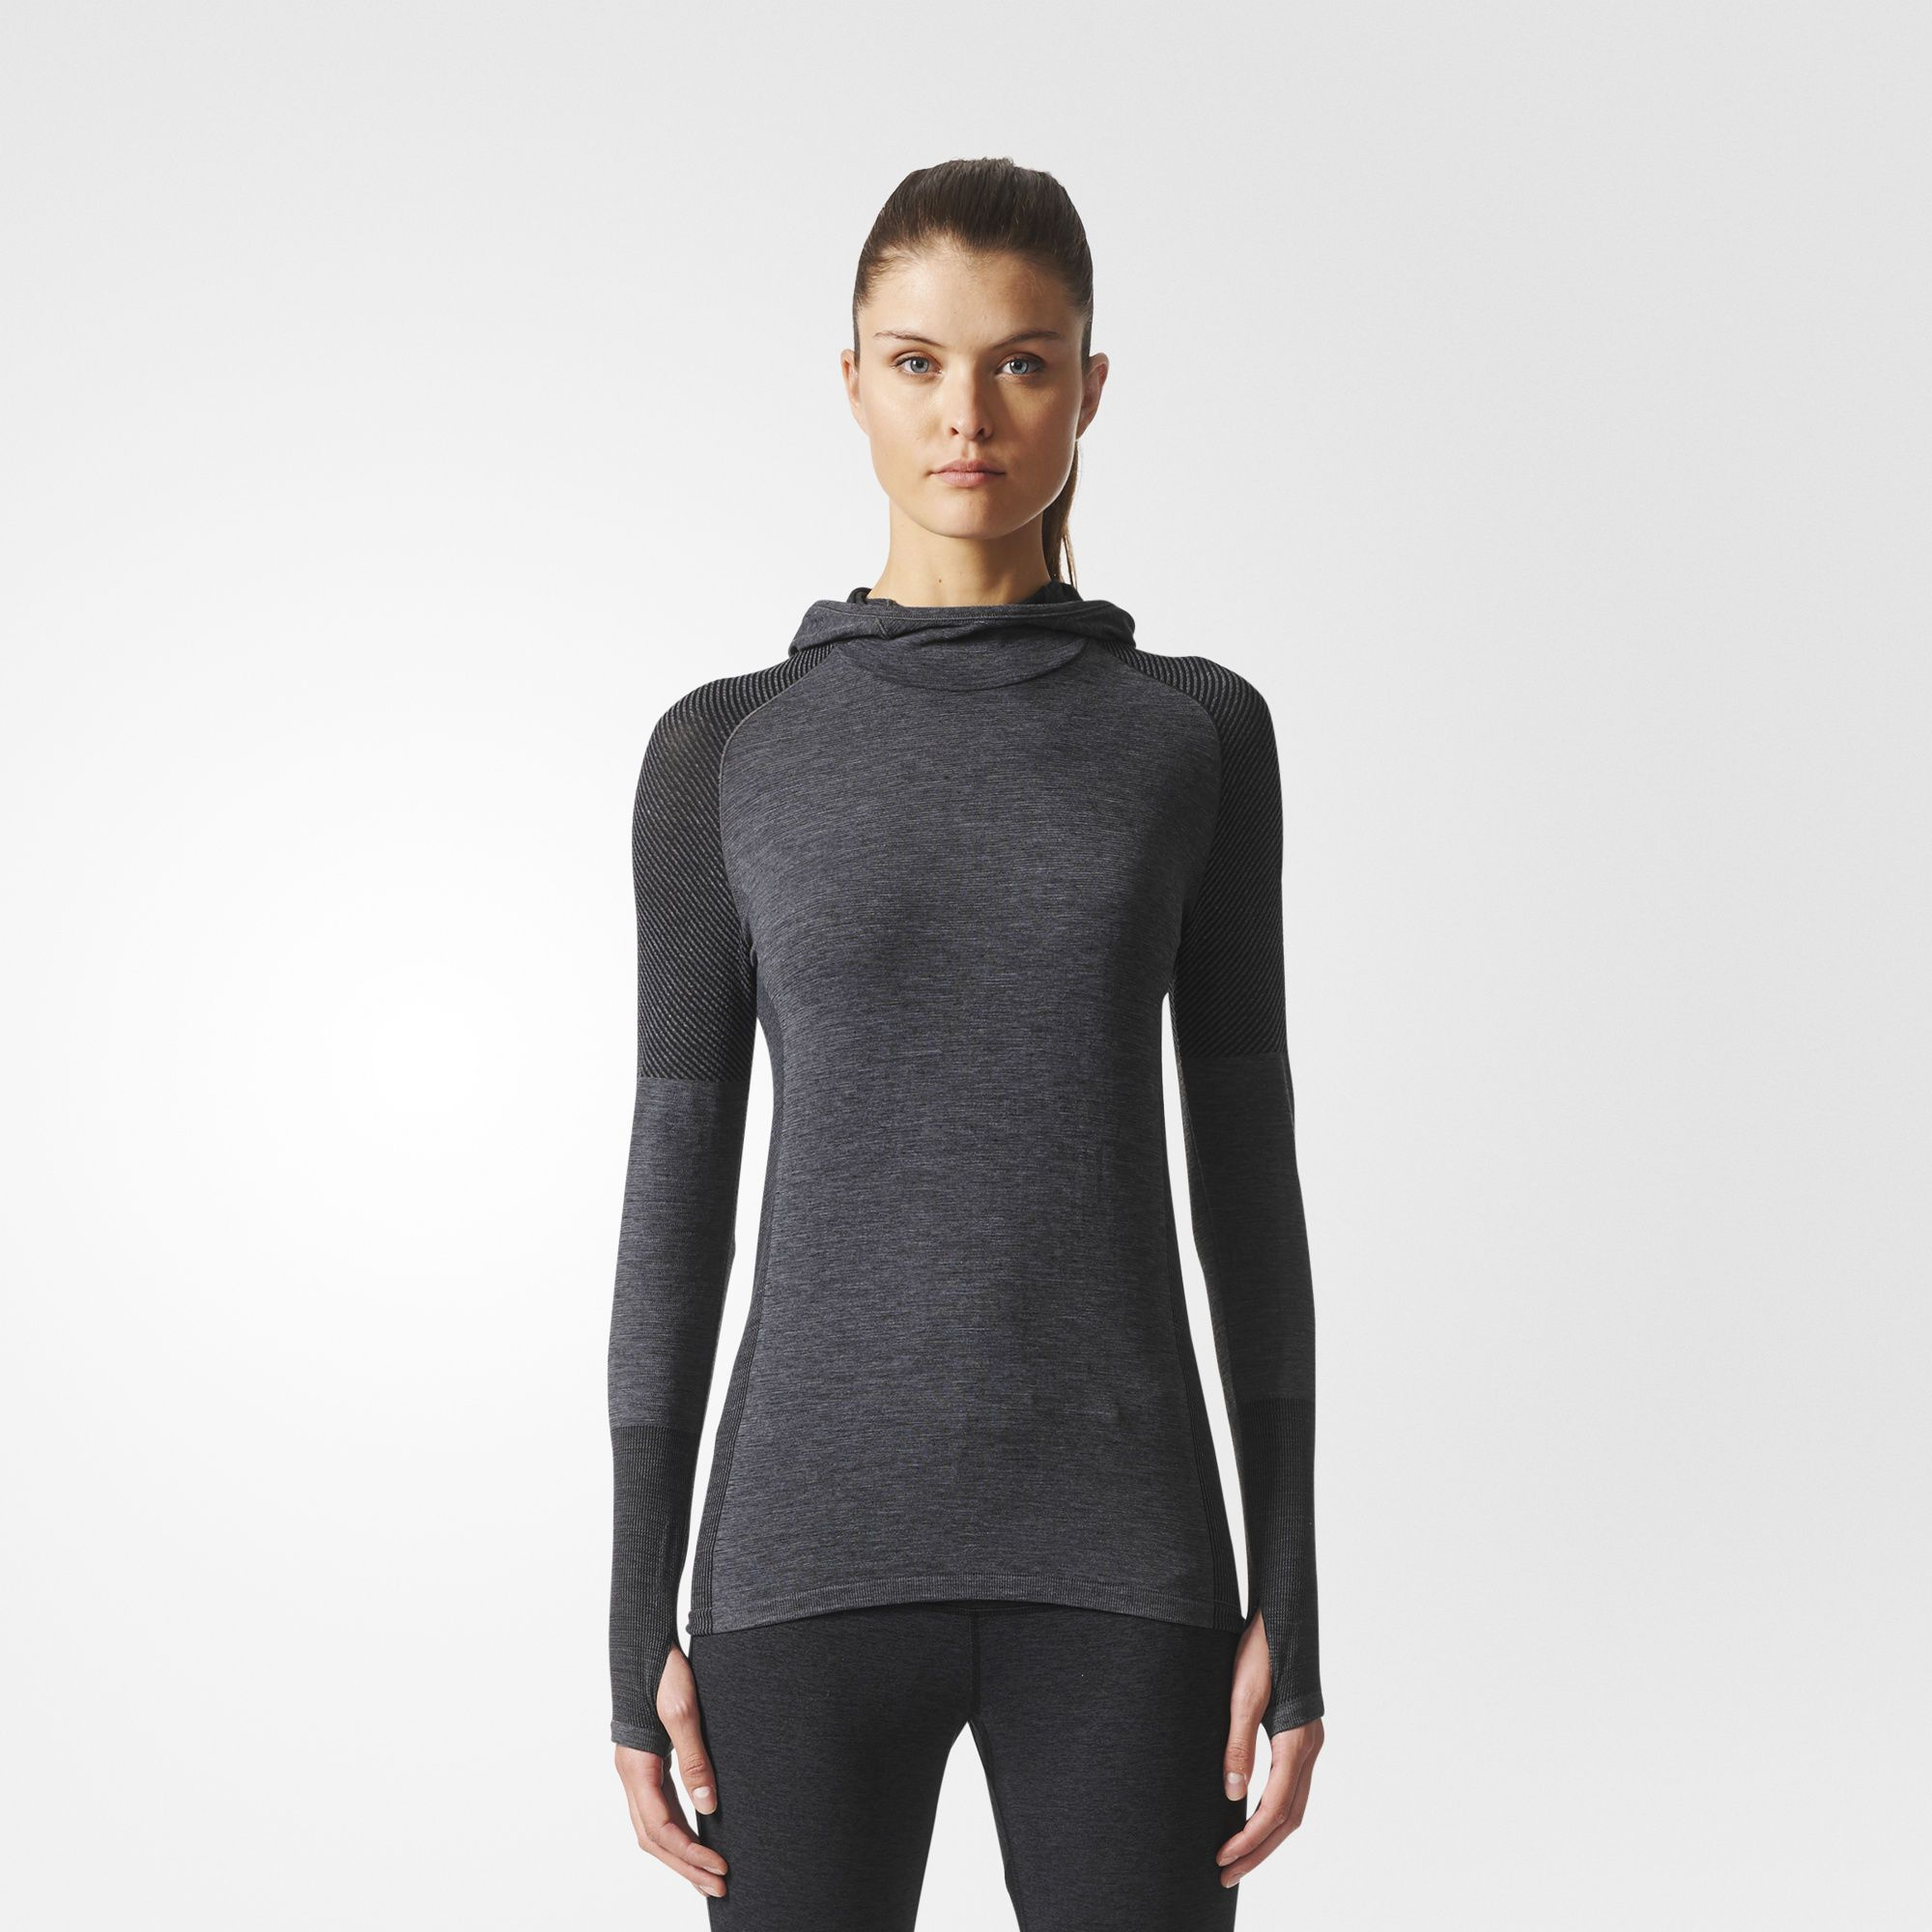 Runners Know That Generating Heat Is The Easy Part Even In Cold Weather Holding On To Your Body S Warmth Womens Long Sleeve Shirts Adidas Women Cool Outfits [ 2000 x 2000 Pixel ]